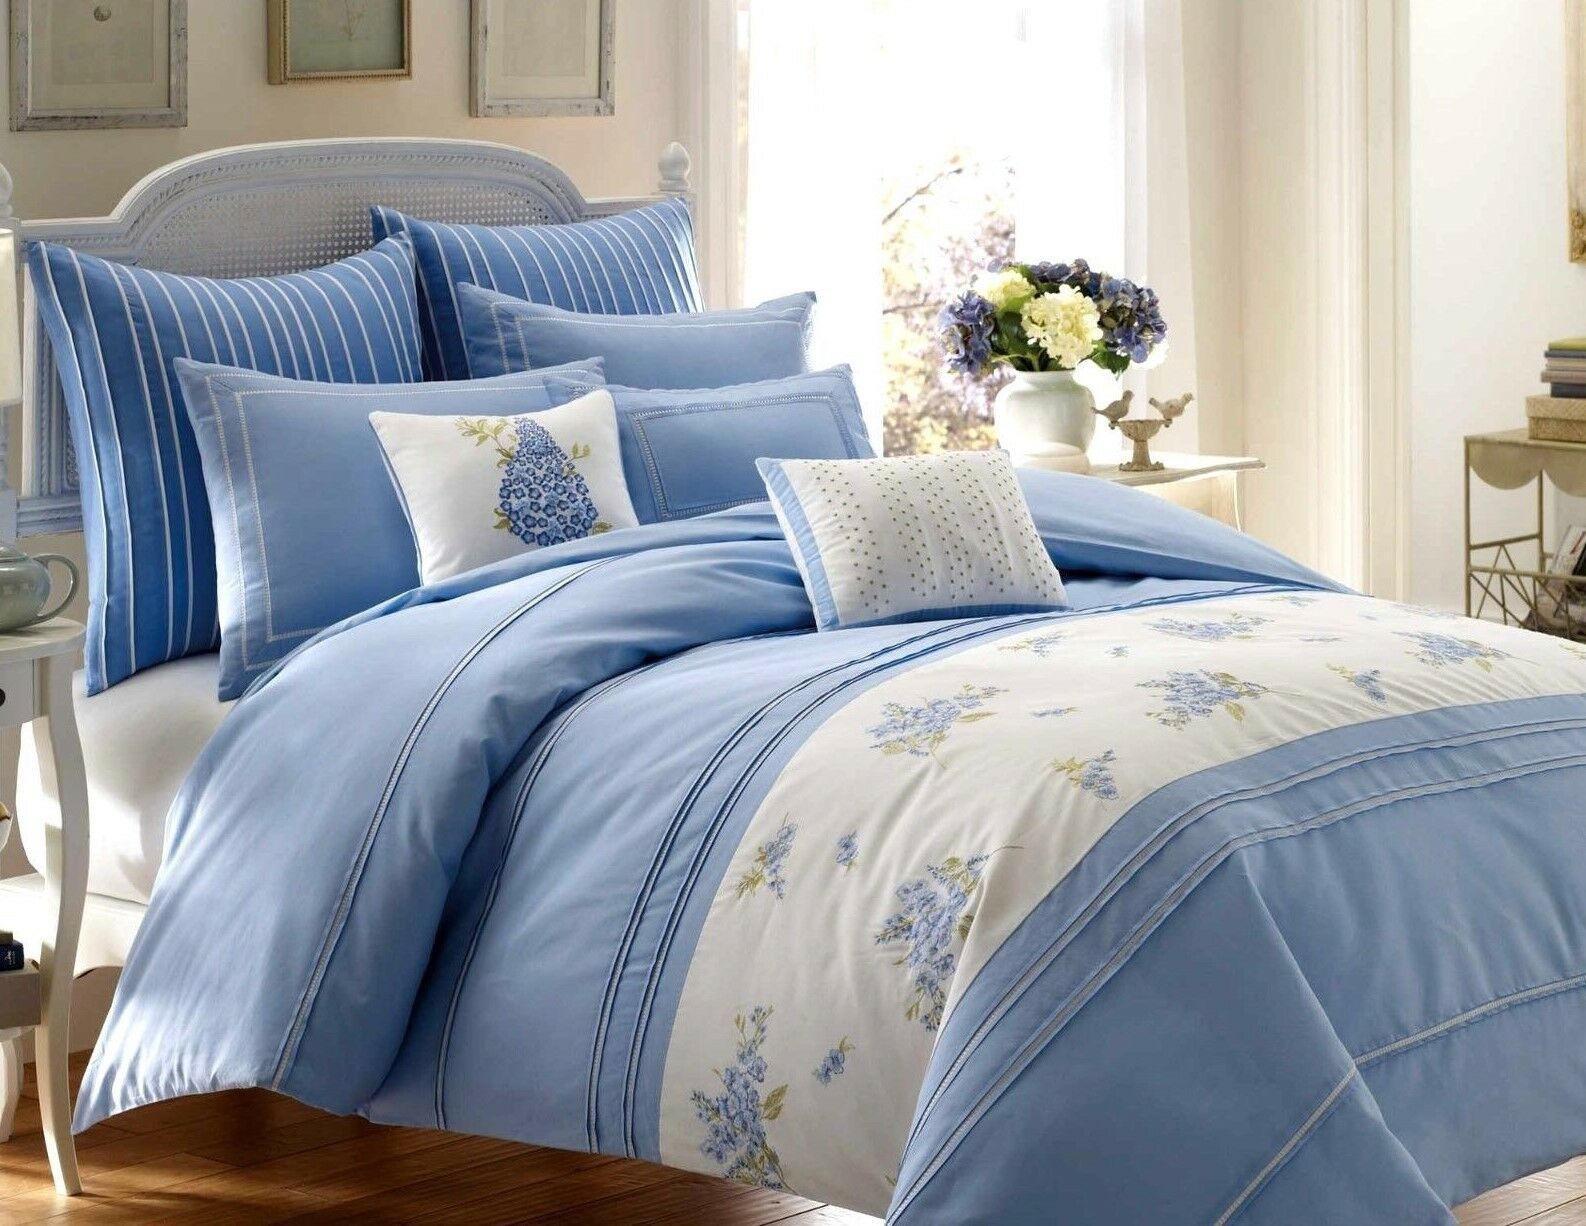 320 Laura Ashley 3PC Set KING Duvet & KING Shams Embroidery Emma Cotton blu